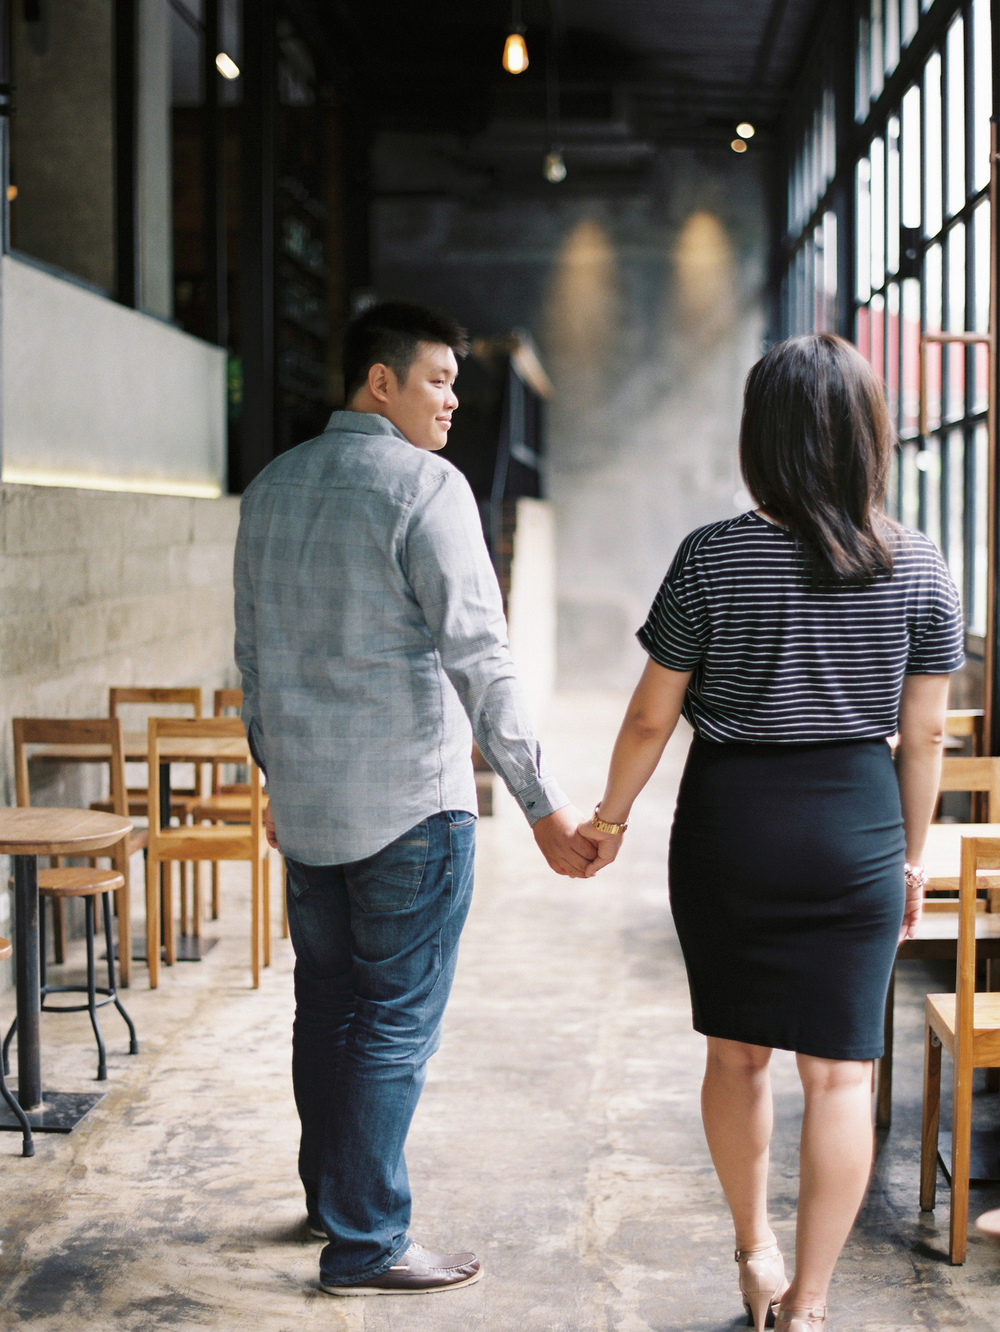 Indoor-Coffee-Shop-Prewedding-Jakarta-7.jpg